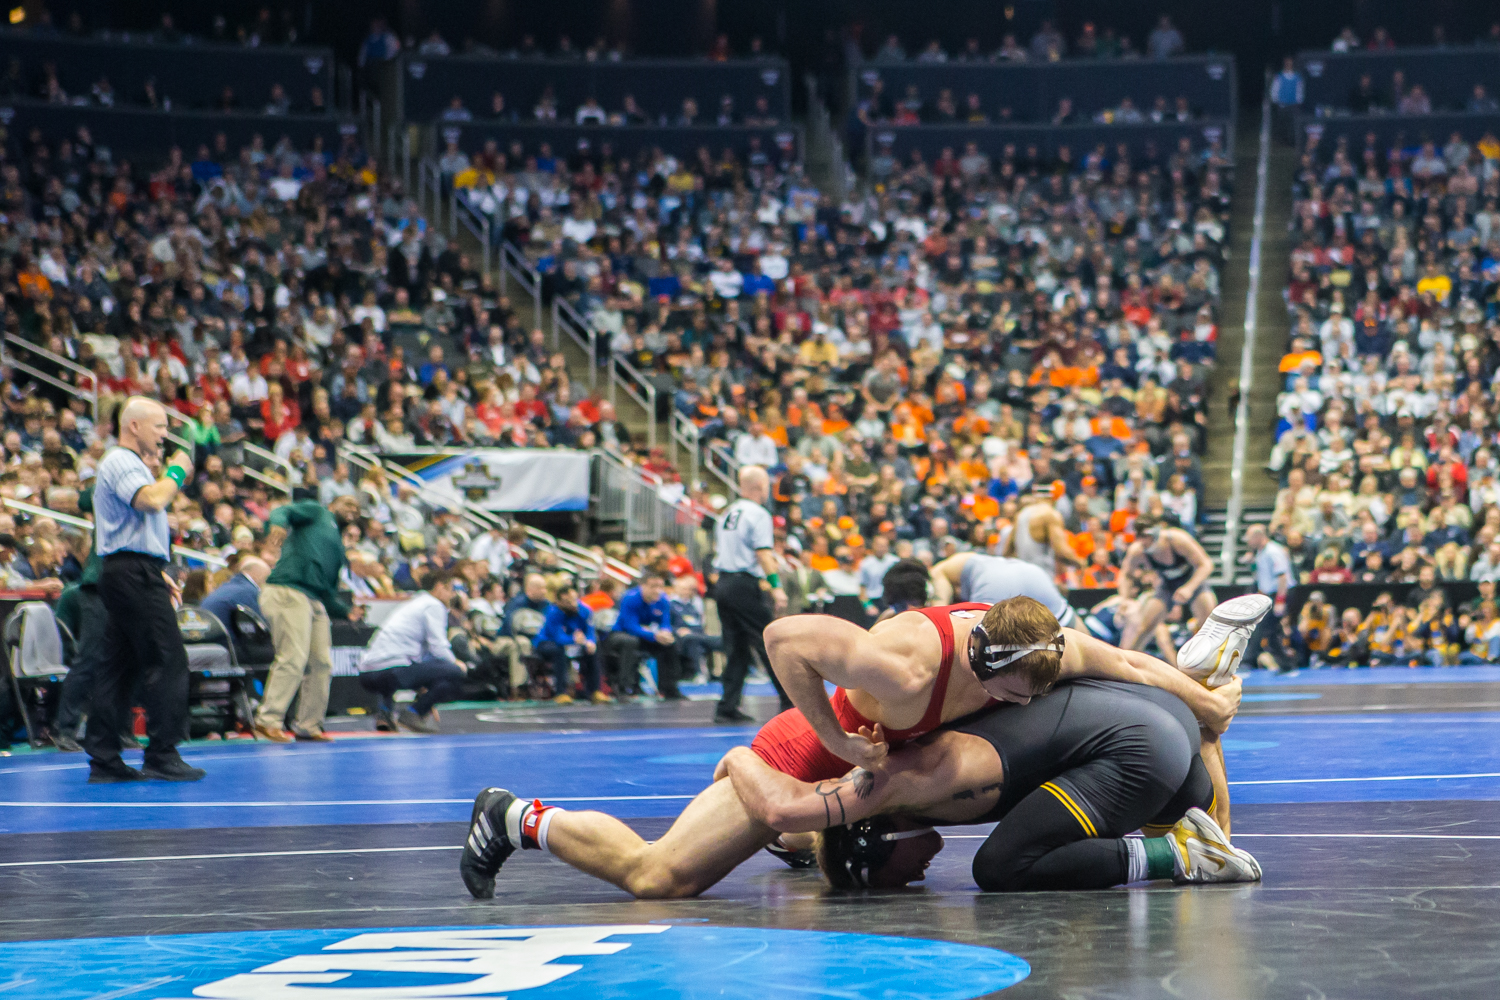 Iowa%E2%80%99s+184-pound+Cash+Wilcke+wrestles+Cornell%E2%80%99s+Maxwell+Dean+during+the+second+session+of+the+2019+NCAA+D1+Wrestling+Championships+at+PPG+Paints+Arena+in+Pittsburgh%2C+PA+on+Thursday%2C+March+21%2C+2019.+Dean+won+by+sudden+victory%2C+6-4.